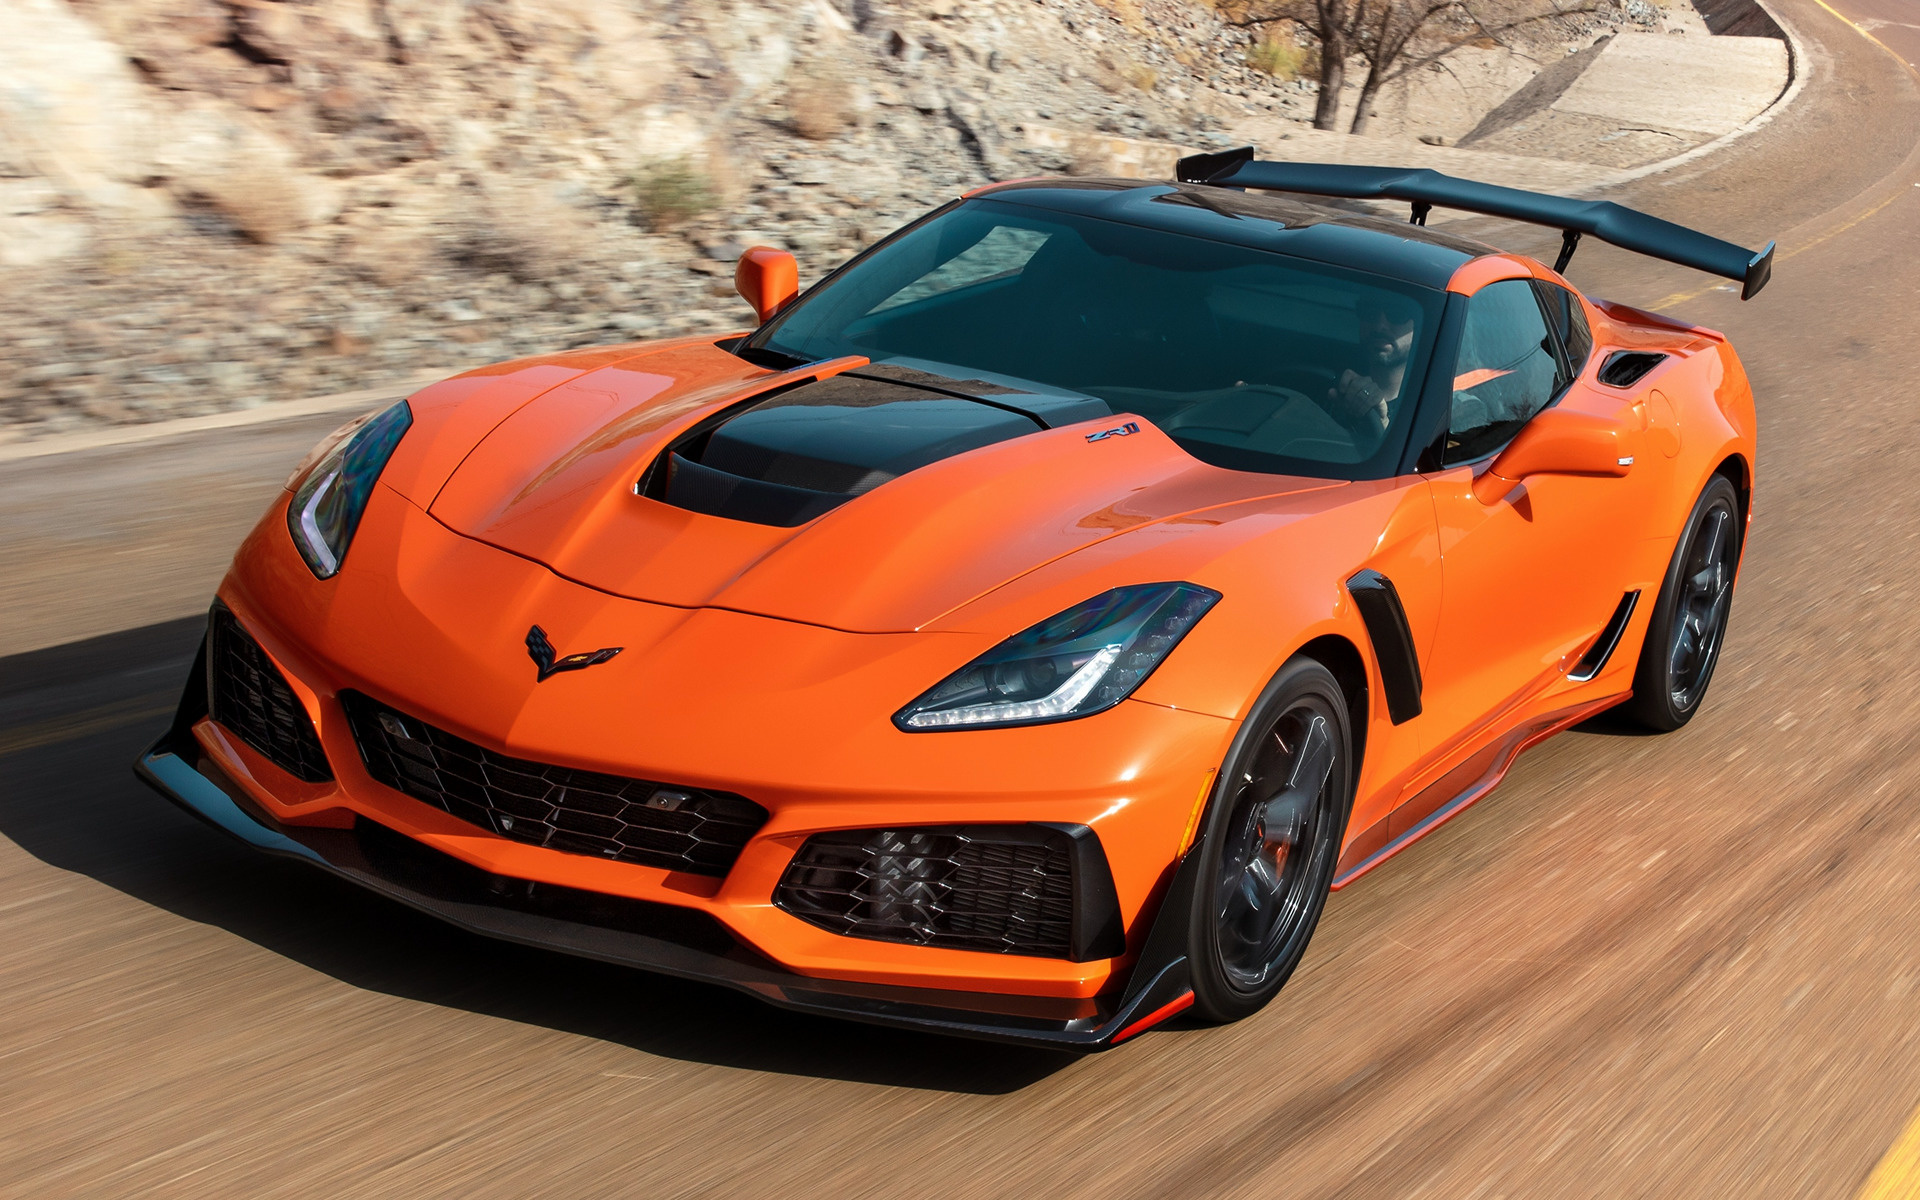 2018 Chevrolet Corvette ZR1 Wallpapers And HD Images